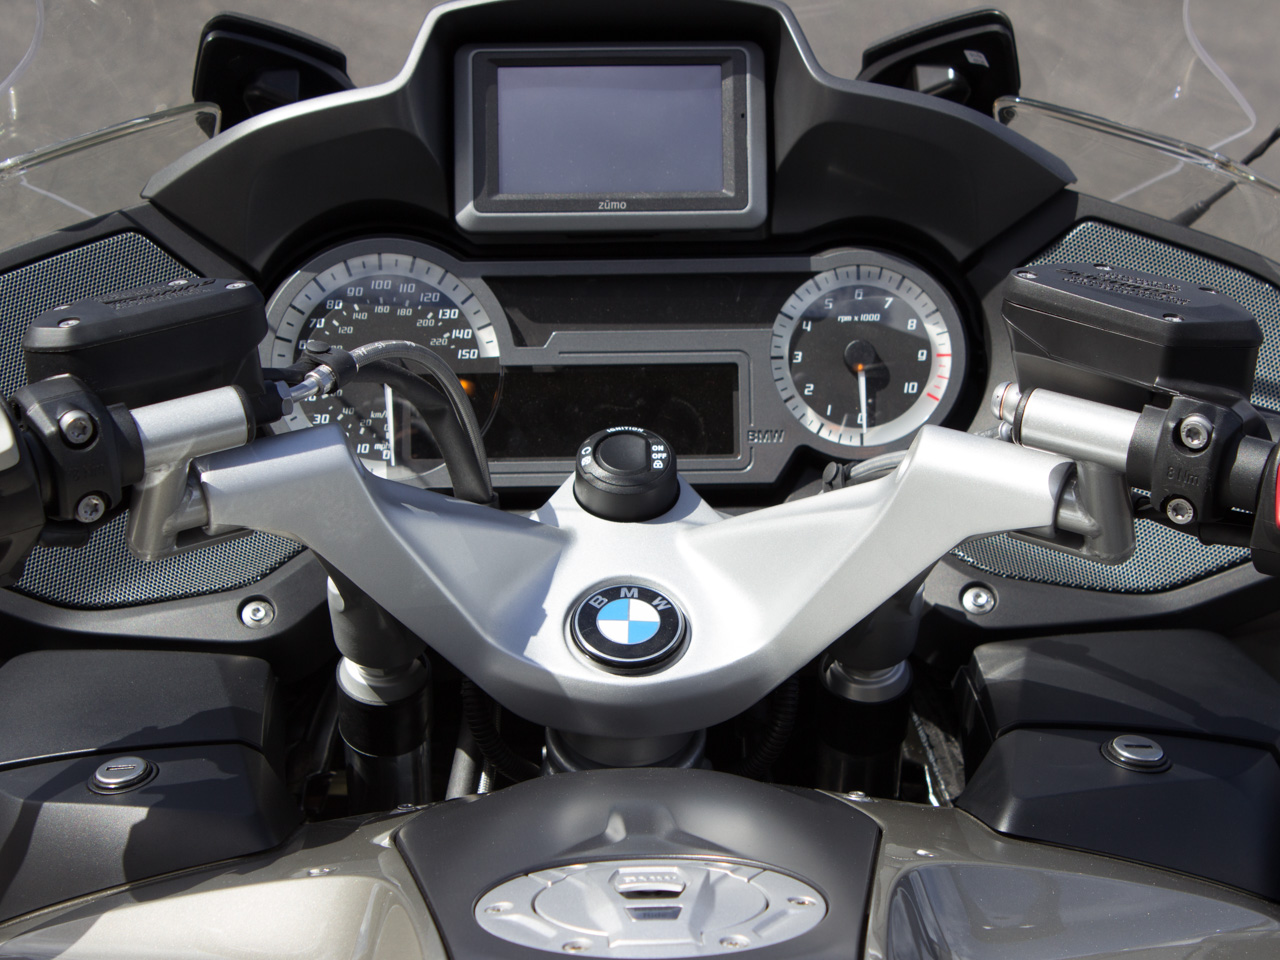 helibars handlebar risers for bmw r1200rt lc moto luxe. Black Bedroom Furniture Sets. Home Design Ideas